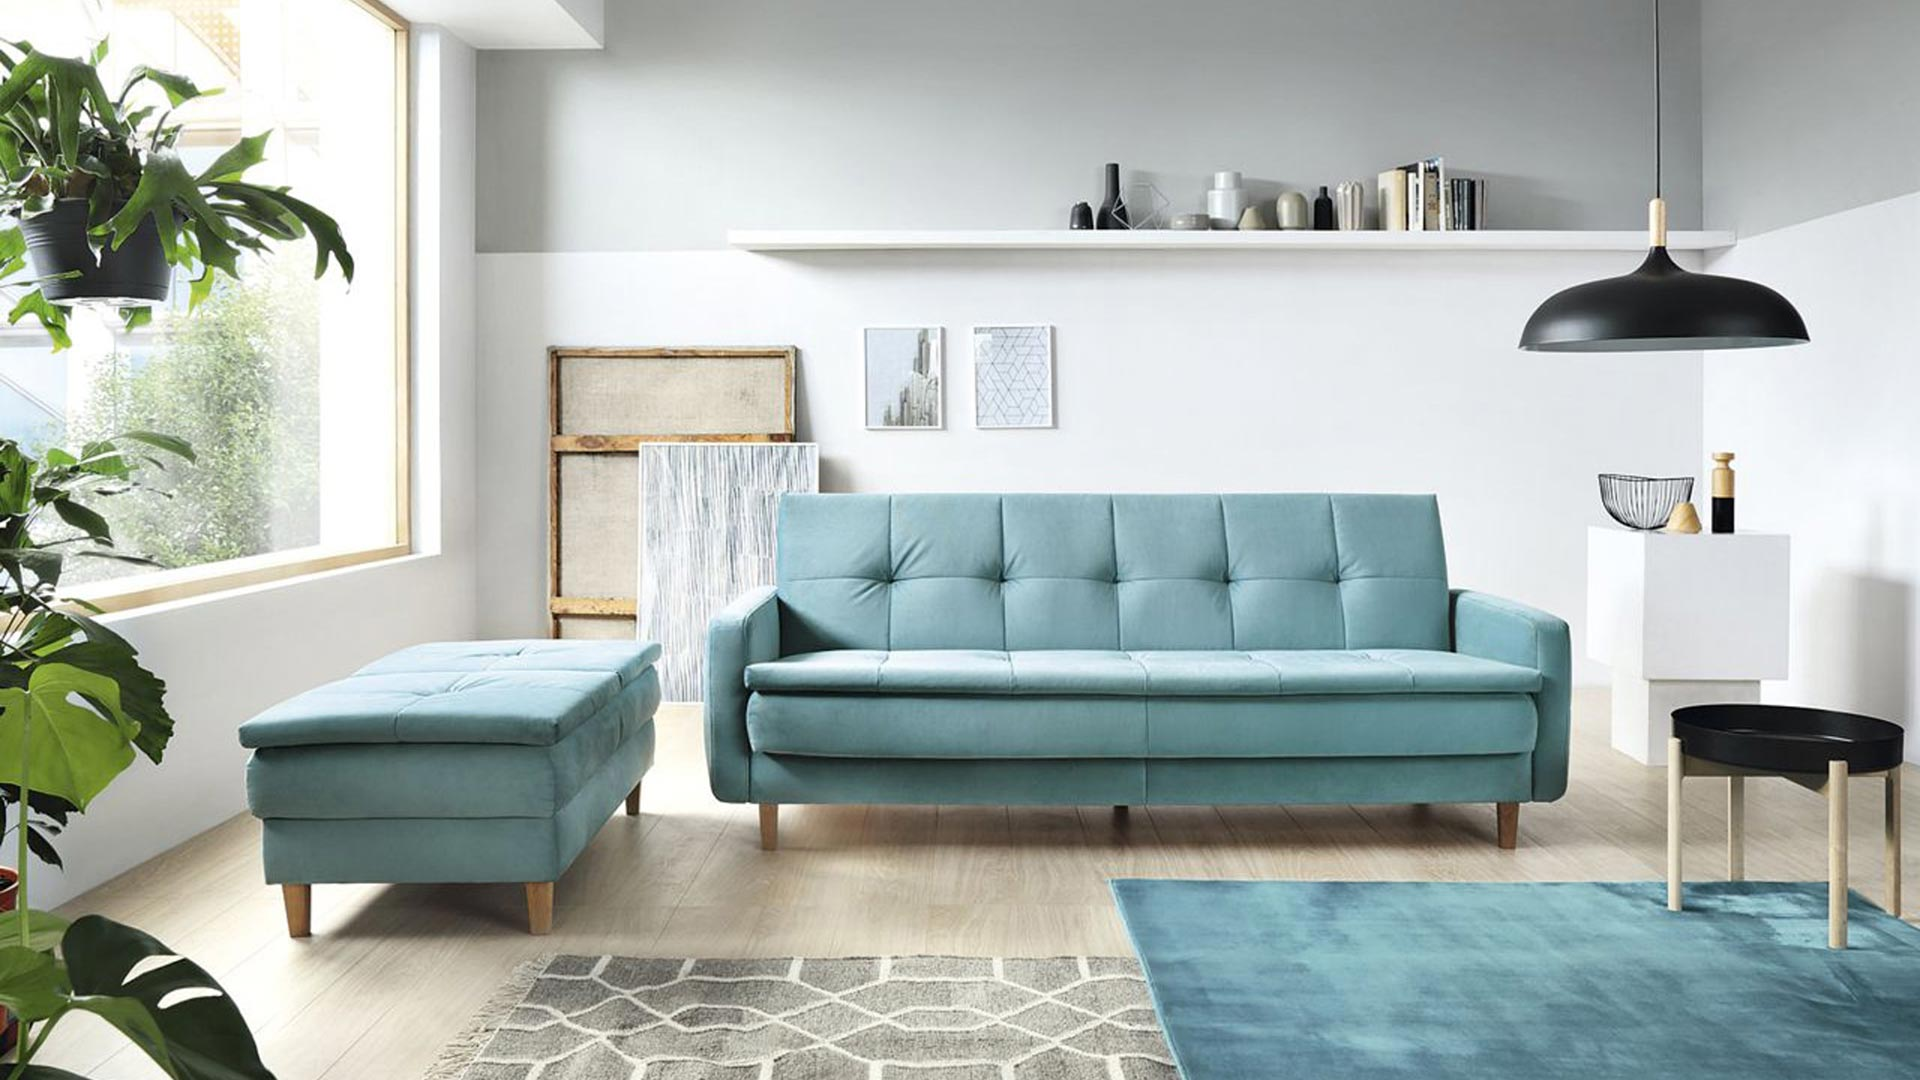 How to make a small apartment cozy - get inspired by Smart Furniture online store